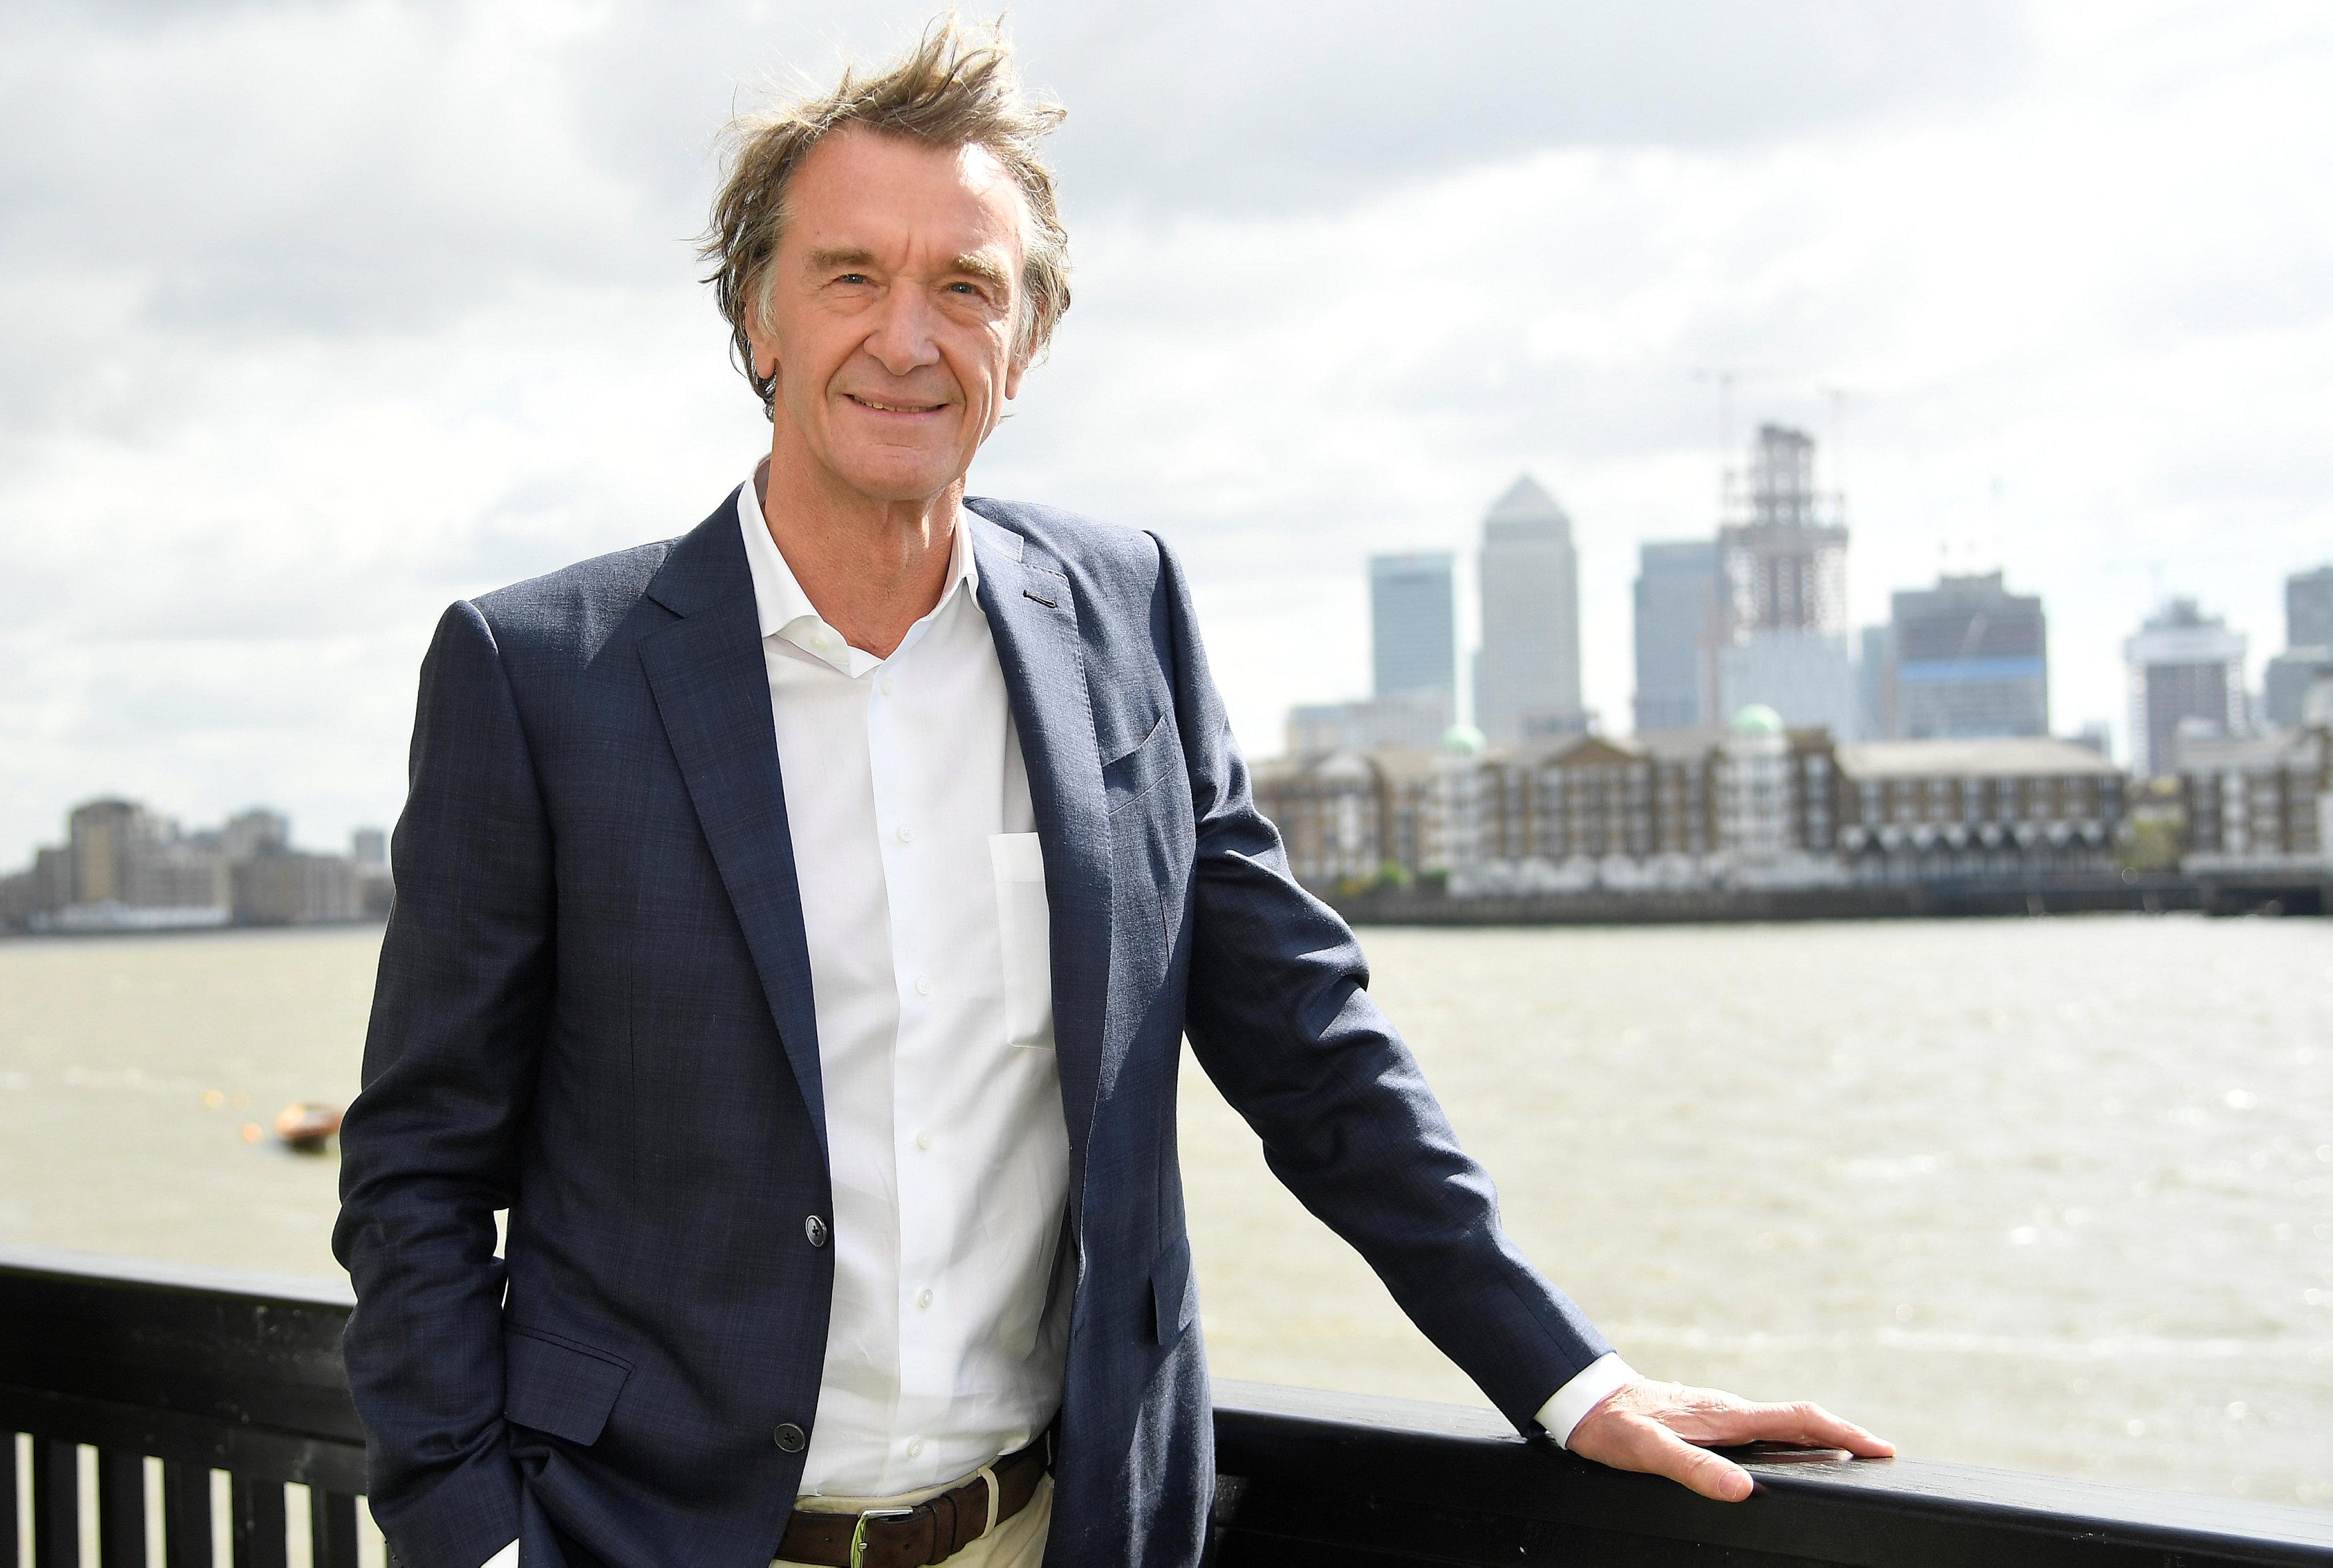 Jim Ratcliffe, CEO of British petrochemicals company INEOS, poses for a portrait with the Canary Wharf financial district seen behind, ahead of a news conference announcing the launch of a British America's Cup sailing team in London, Britain, April 26, 2018. Toby Melville